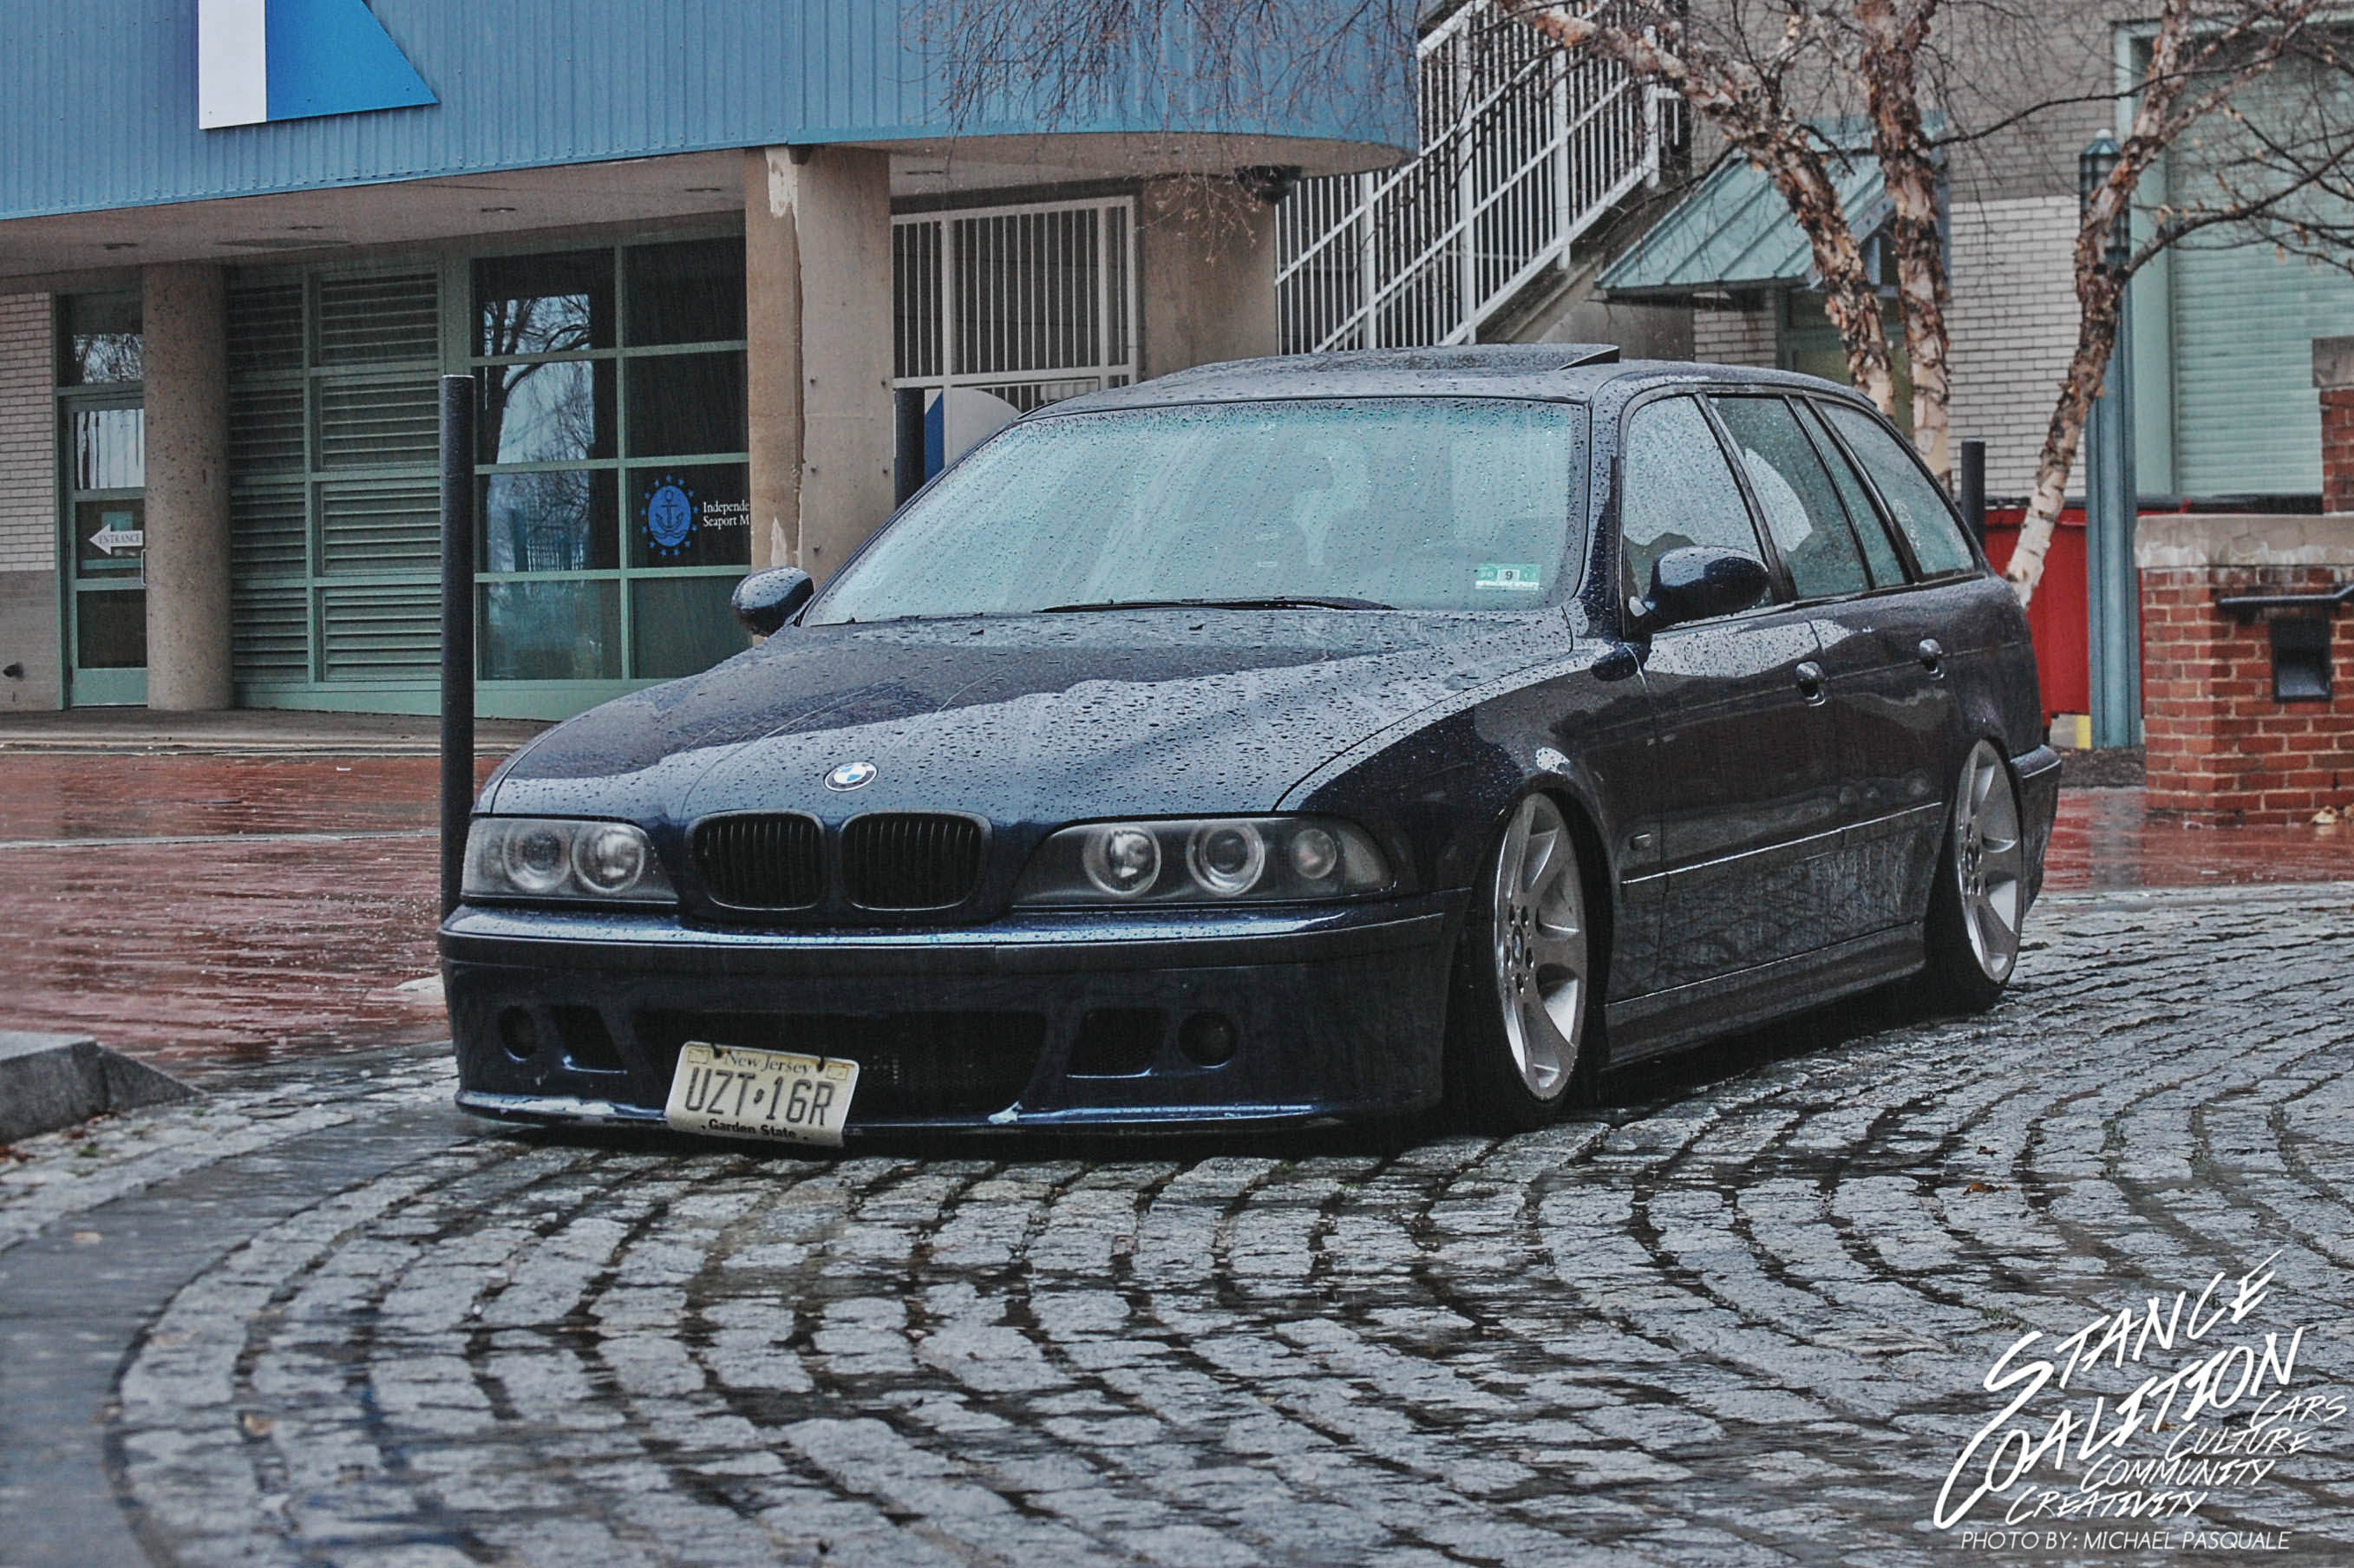 Caution Deep Puddles Tys Bmw 5 Series Wagon Stancecoalition The Car Sports A 44 Liter V8 That Makes This Dad Get Up And Go But E46 M3 Front Bumper Carbon Bill Euro 50 Tails Gave